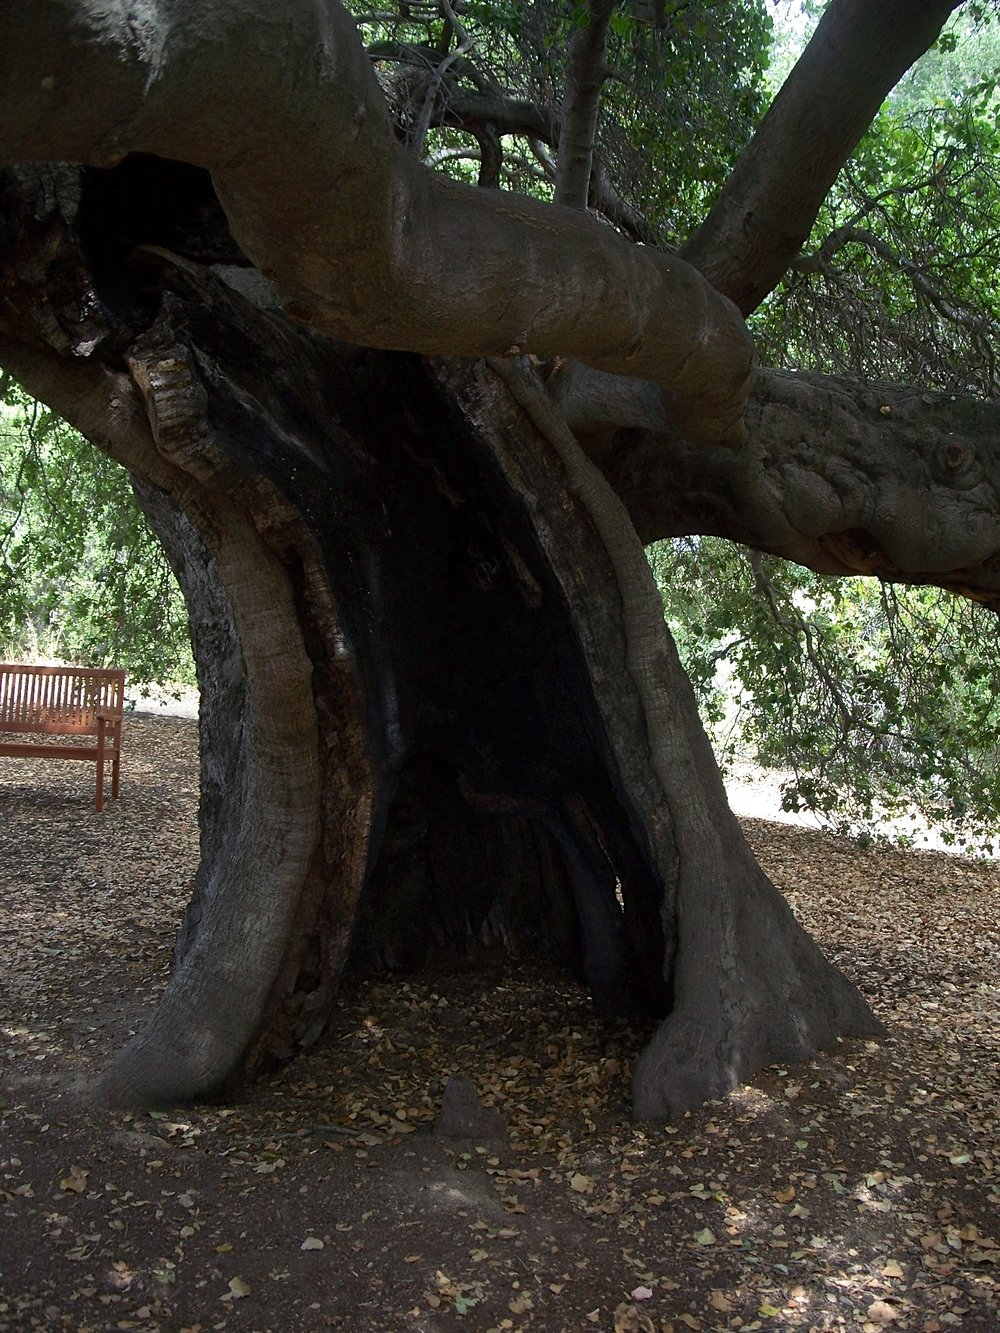 BABA'S TREE where the 1985 New Life Fire burned a significant portion of the trunk. The tree is a Coast Live Oak ( Quercus agrifolia ). (Photo: Judy Ann Barkow, August 2012)